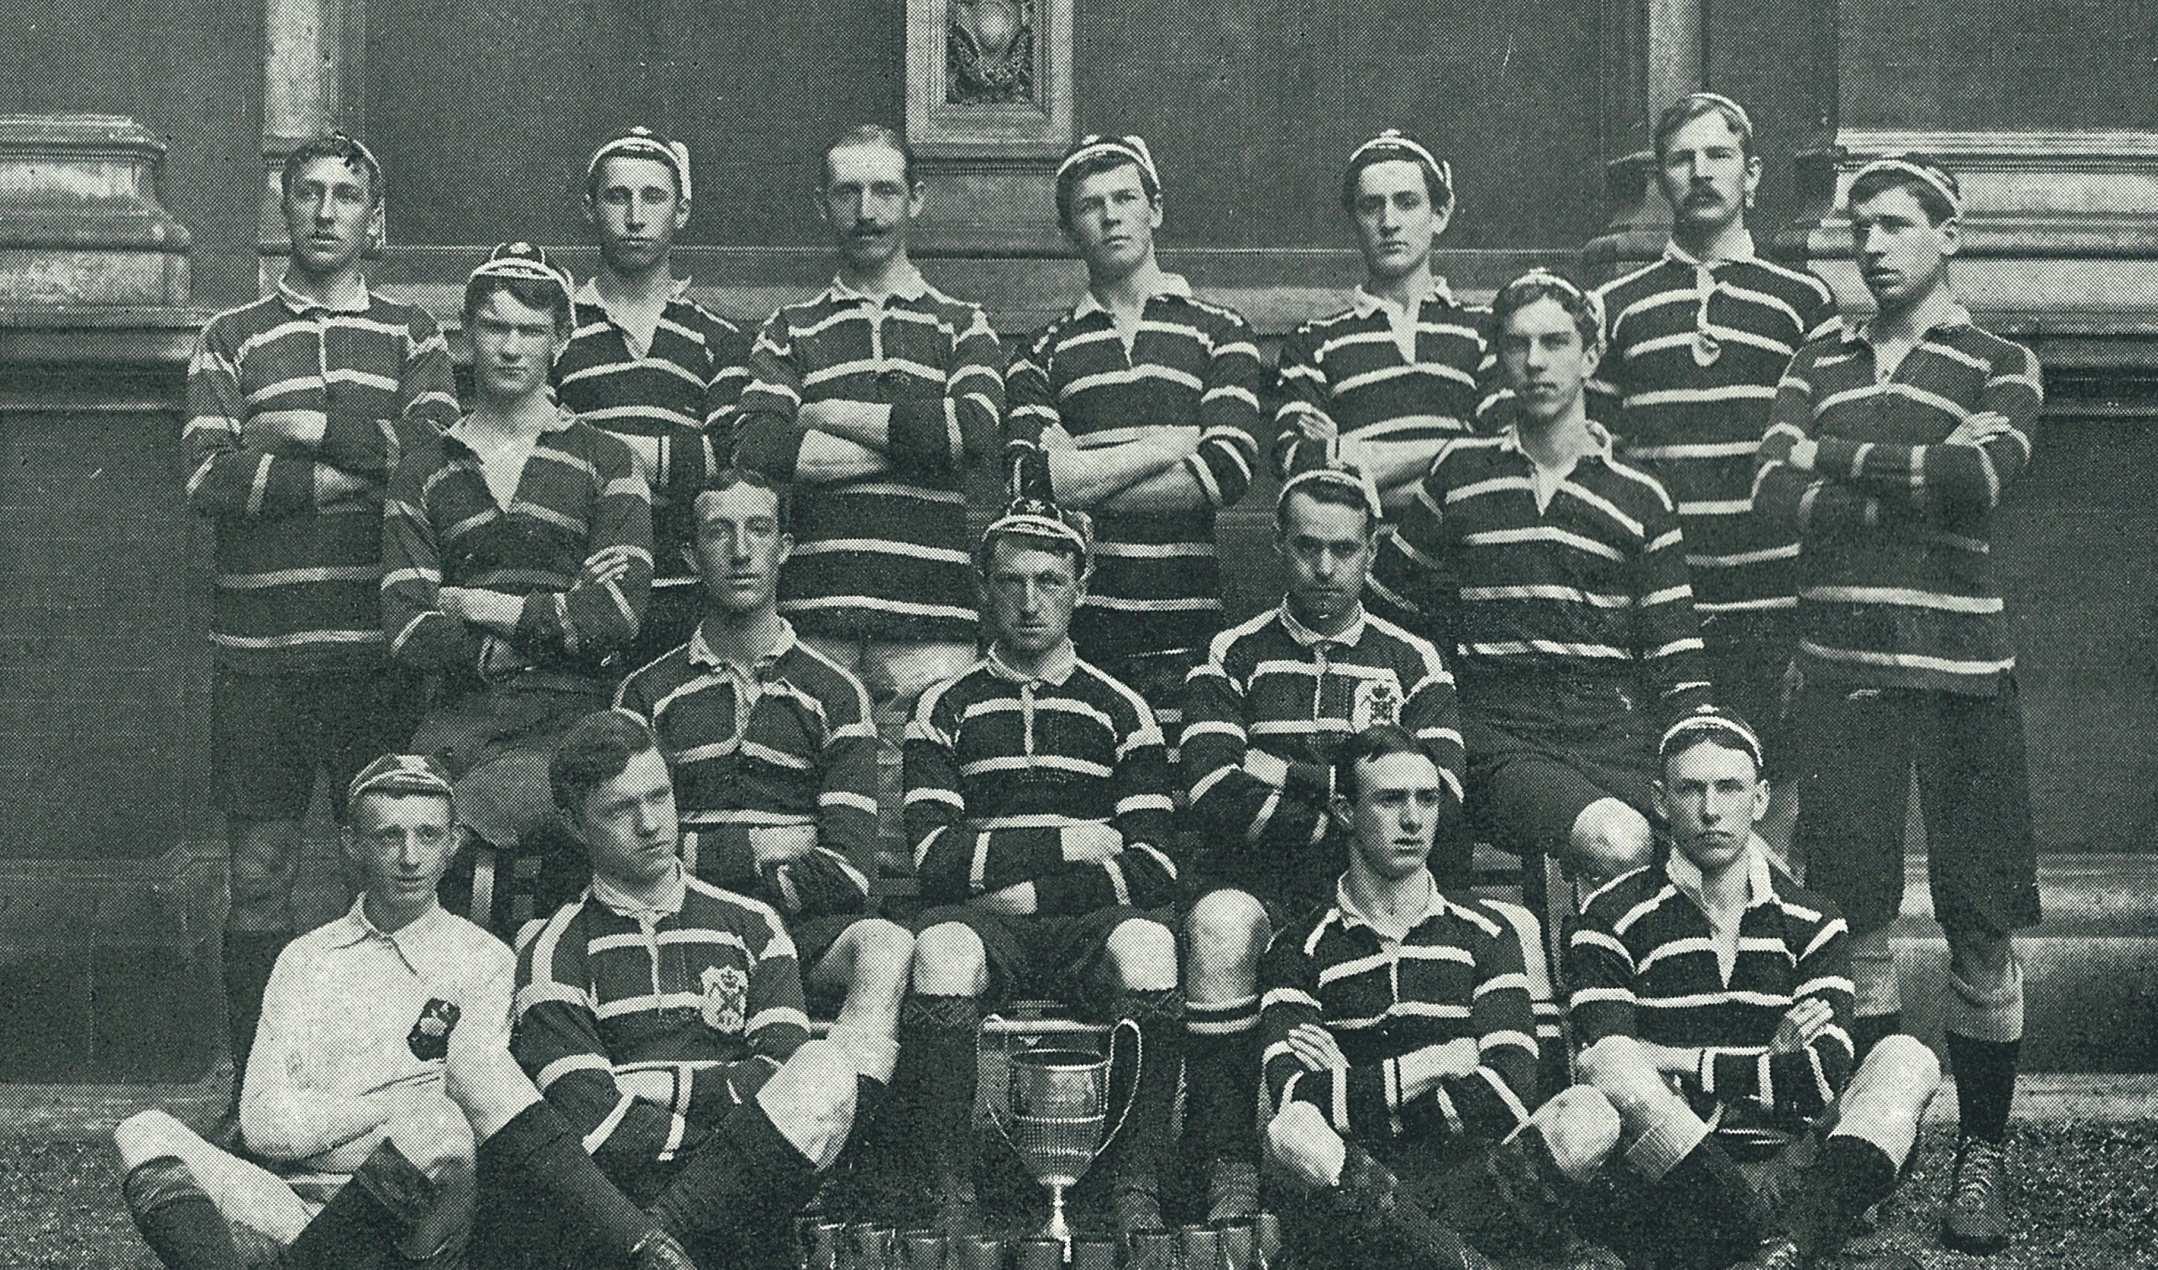 RSM Rugby team photo 1903-04